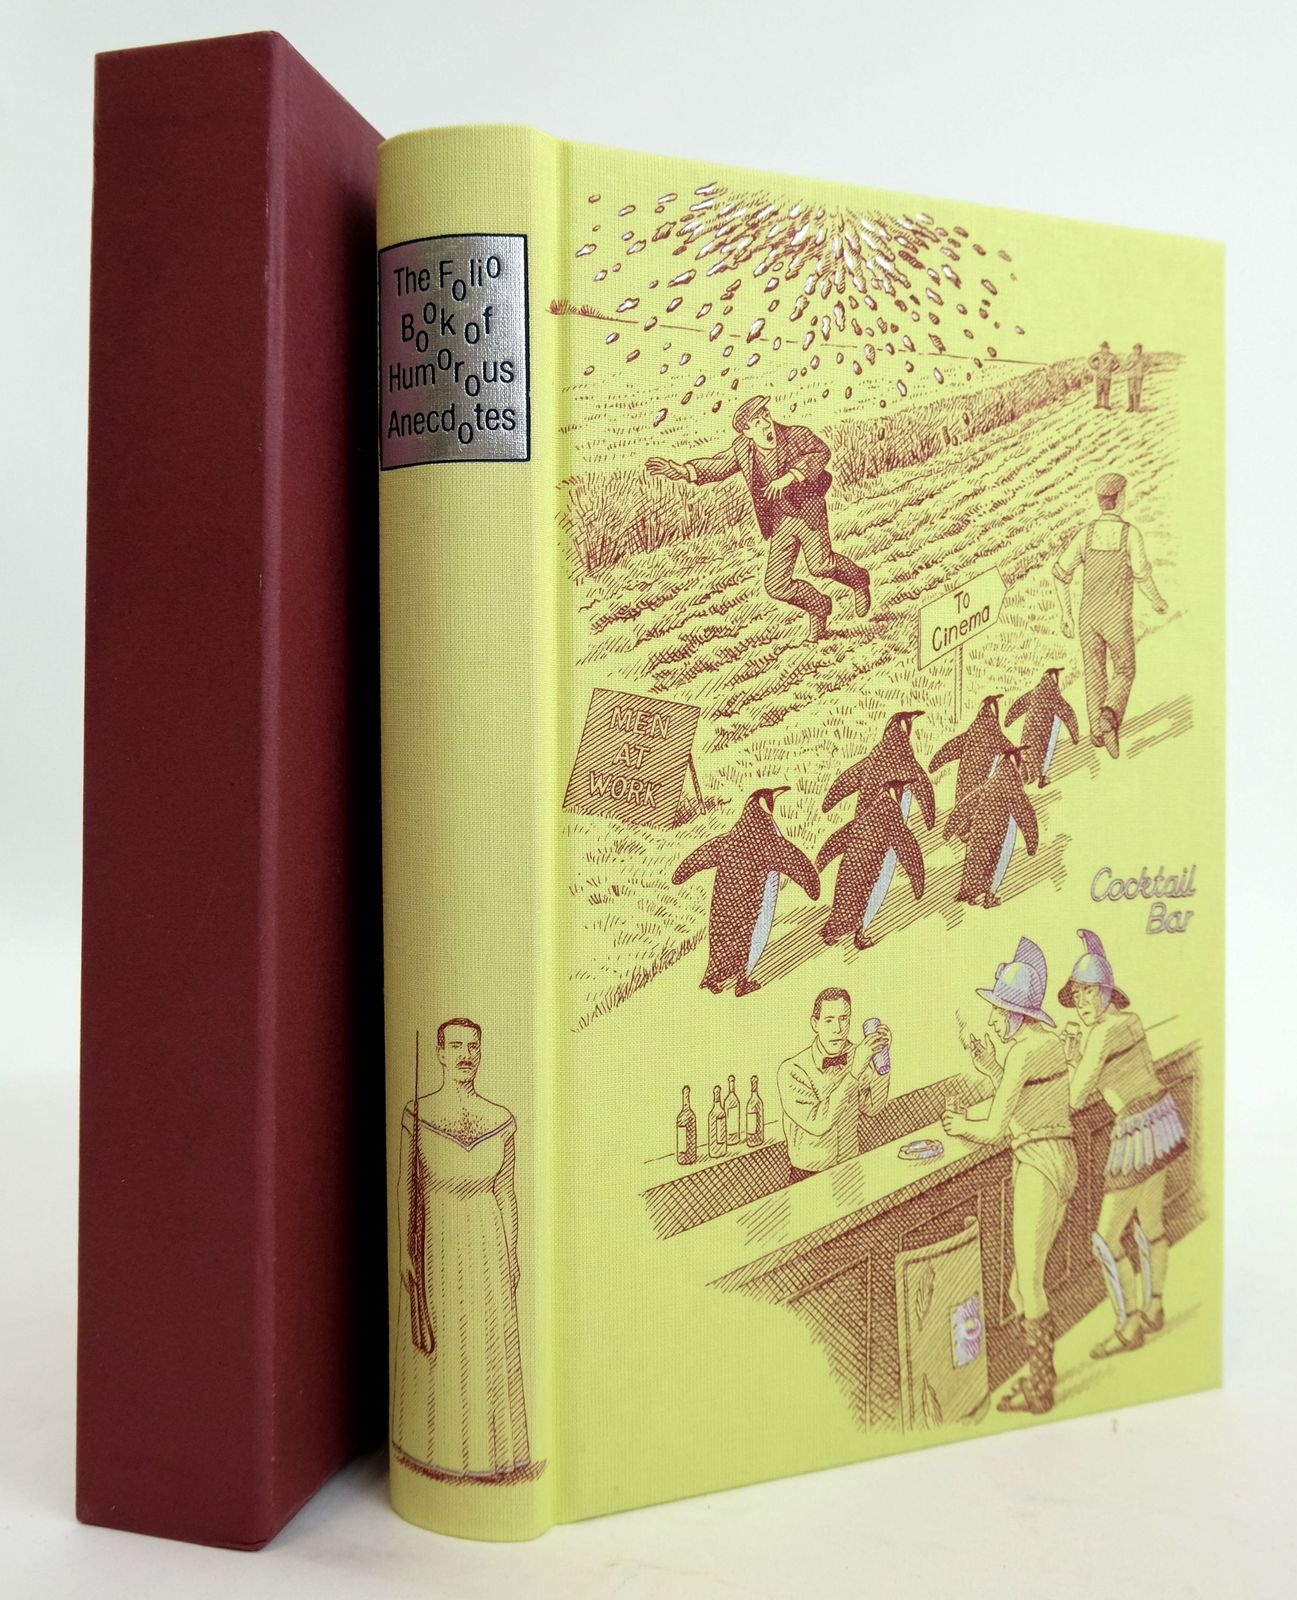 Photo of THE FOLIO BOOK OF HUMOROUS ANECDOTES written by Leeson, Edward illustrated by Hardcastle, Nick published by Folio Society (STOCK CODE: 1820235)  for sale by Stella & Rose's Books